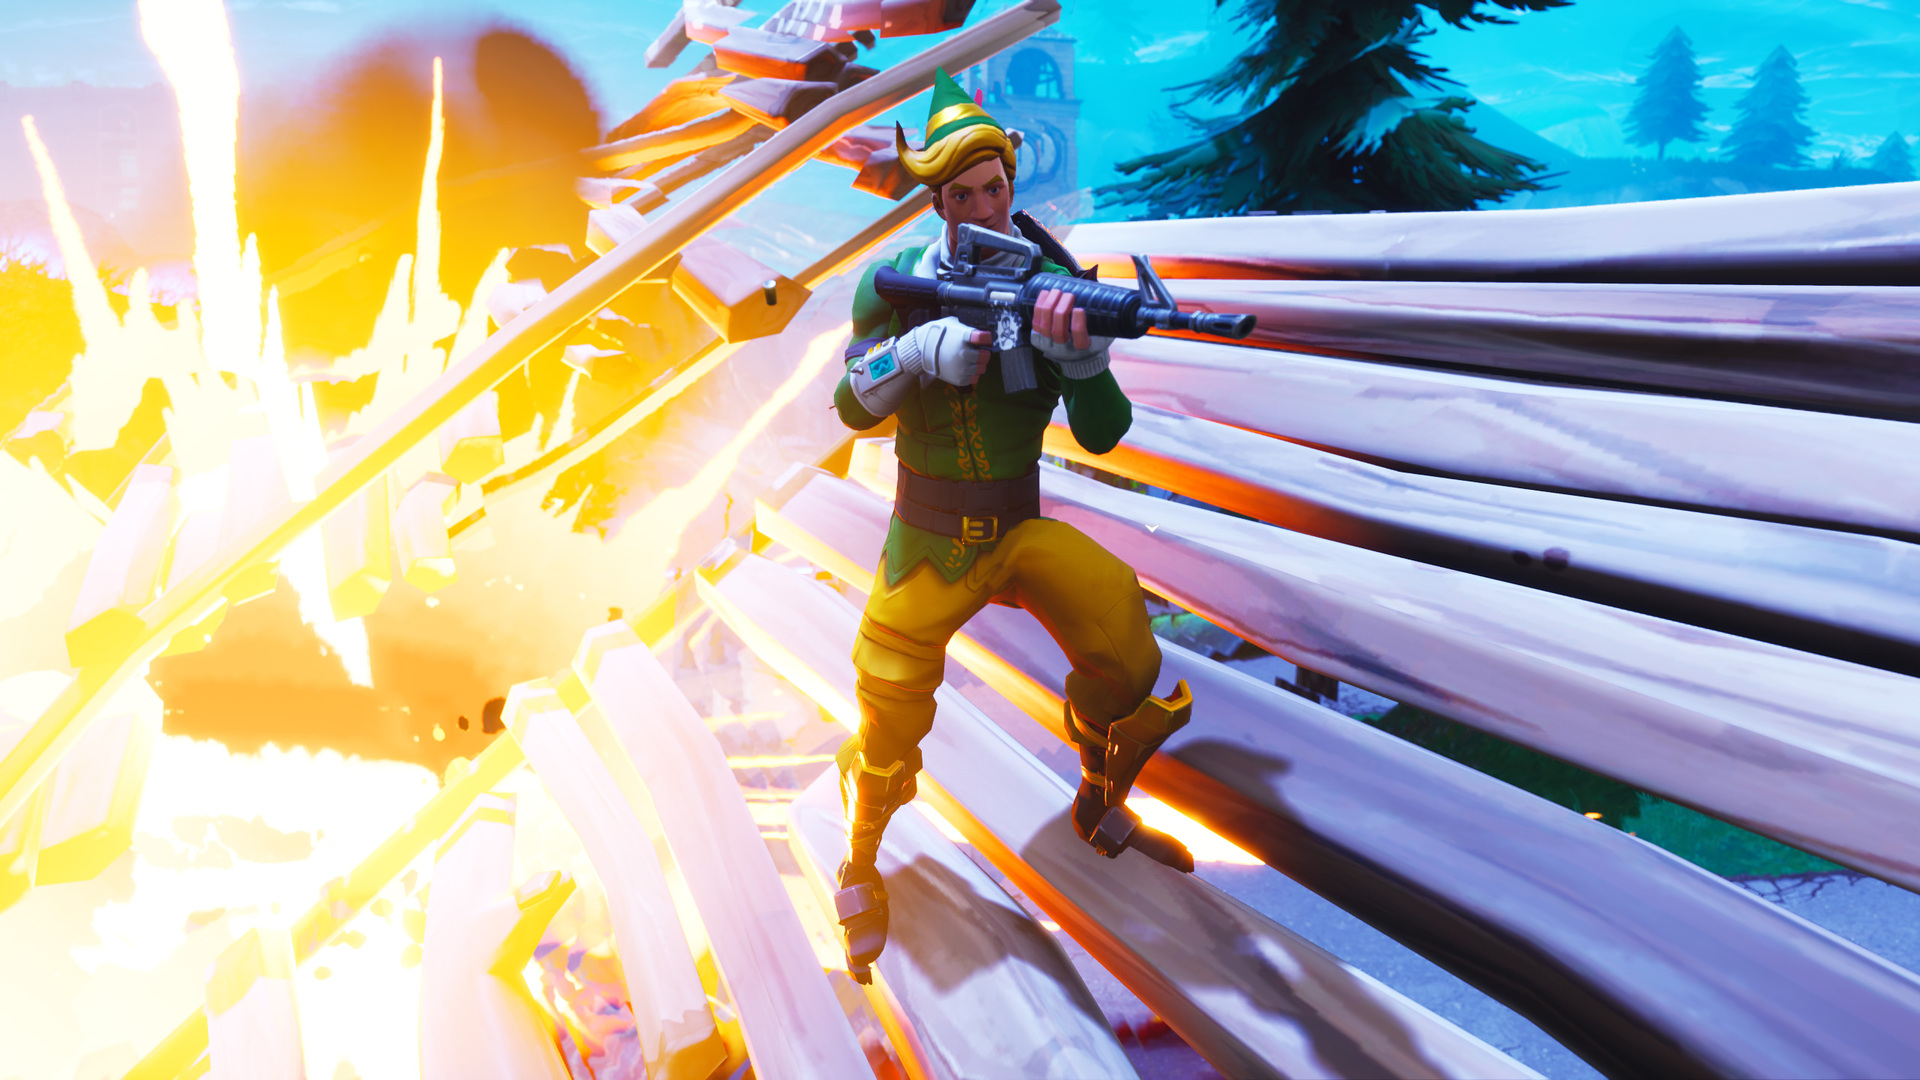 The Best Fornite Wallpaper For Laptop Images